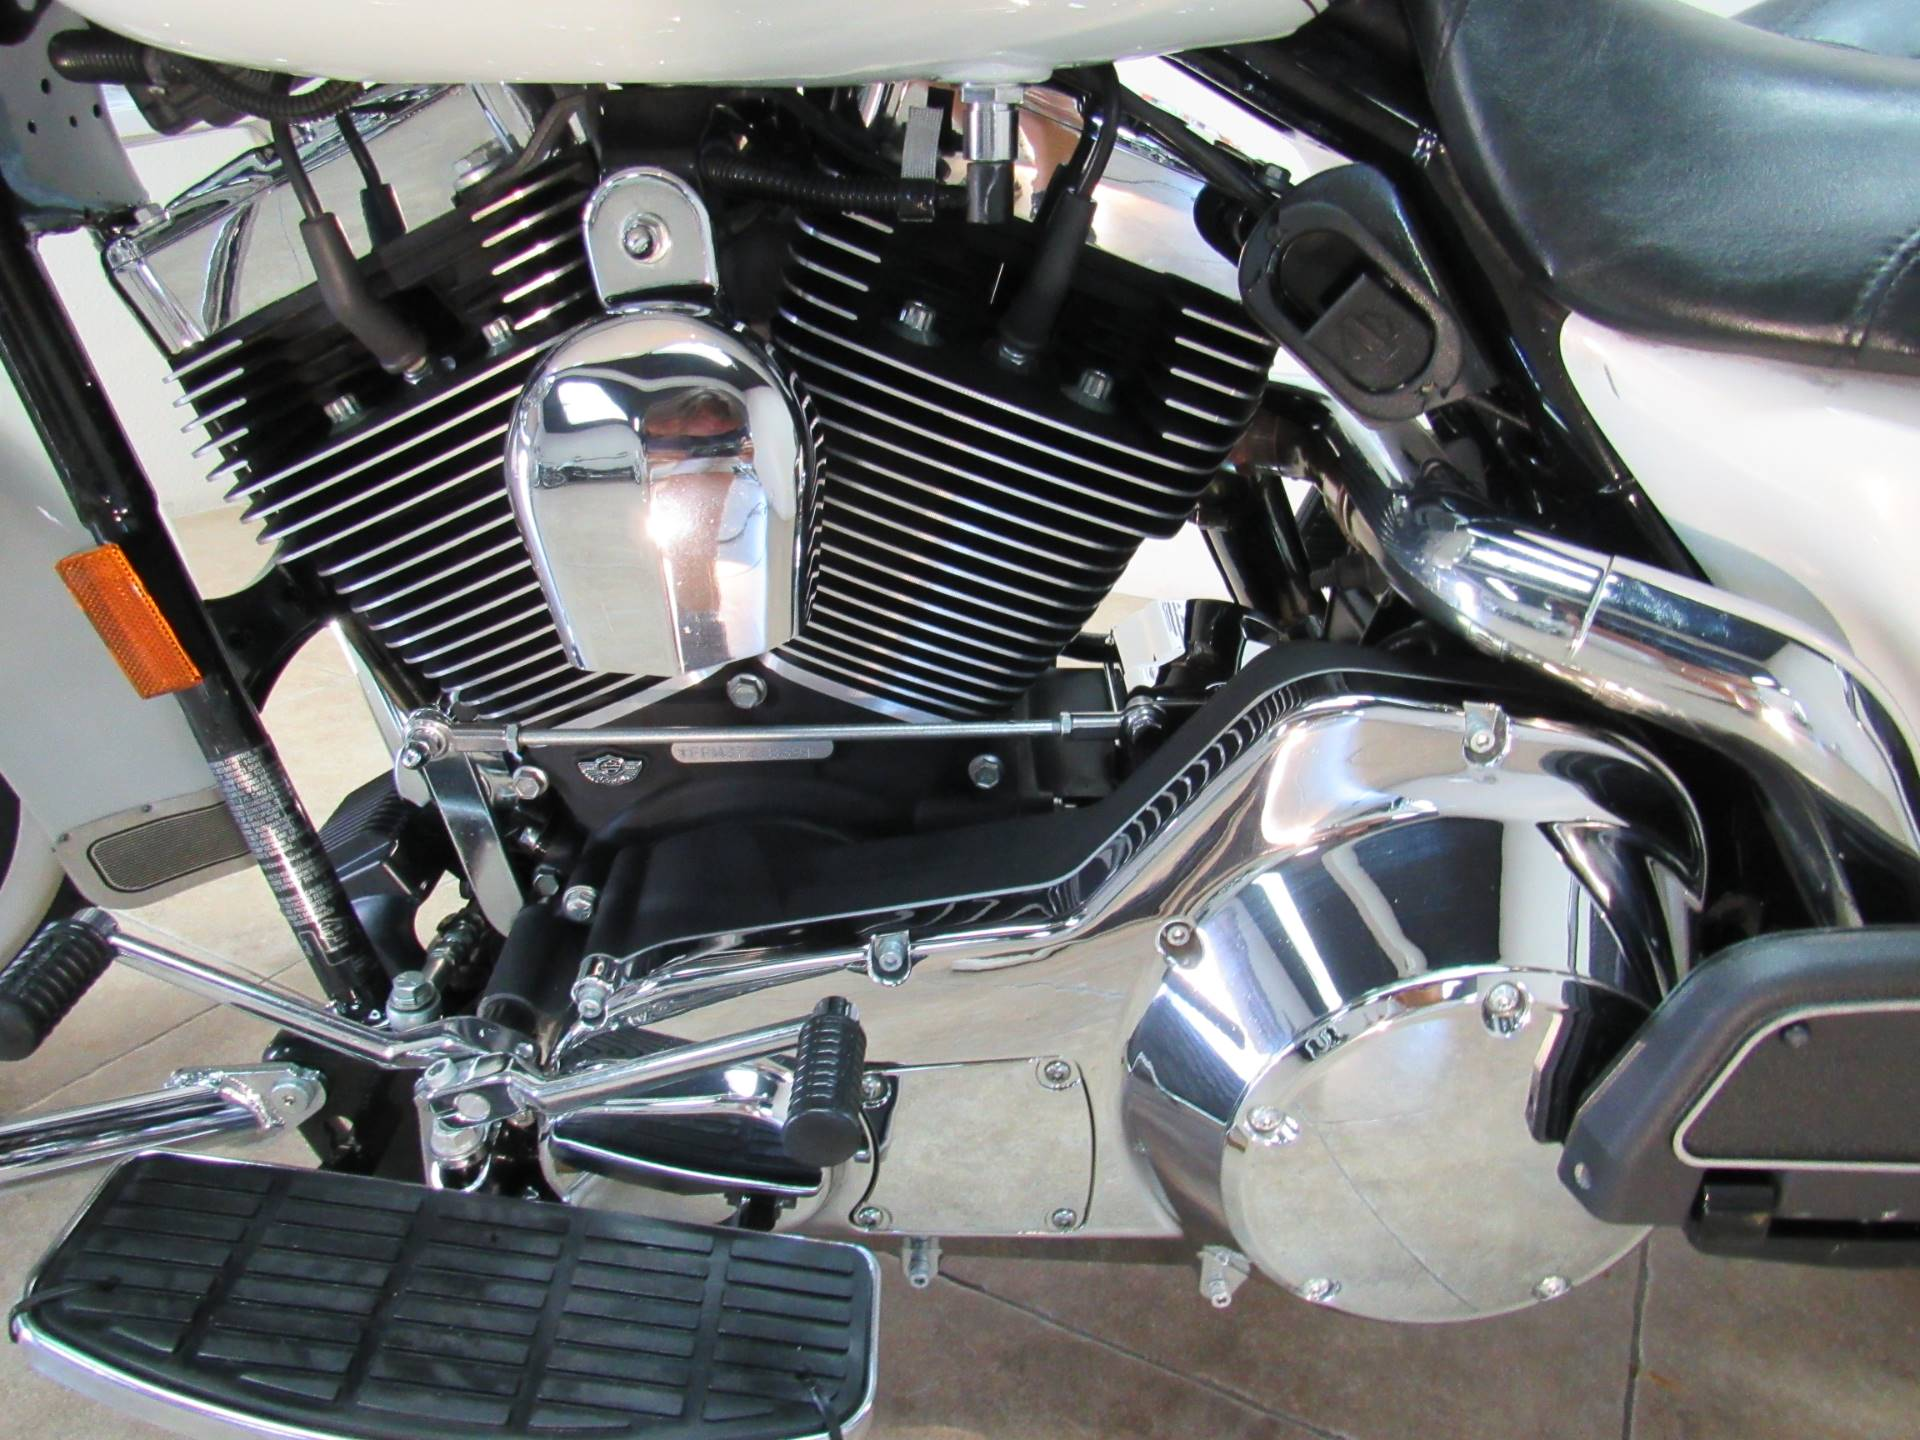 2003 Harley-Davidson FLHRCI Road King® Classic in Temecula, California - Photo 6